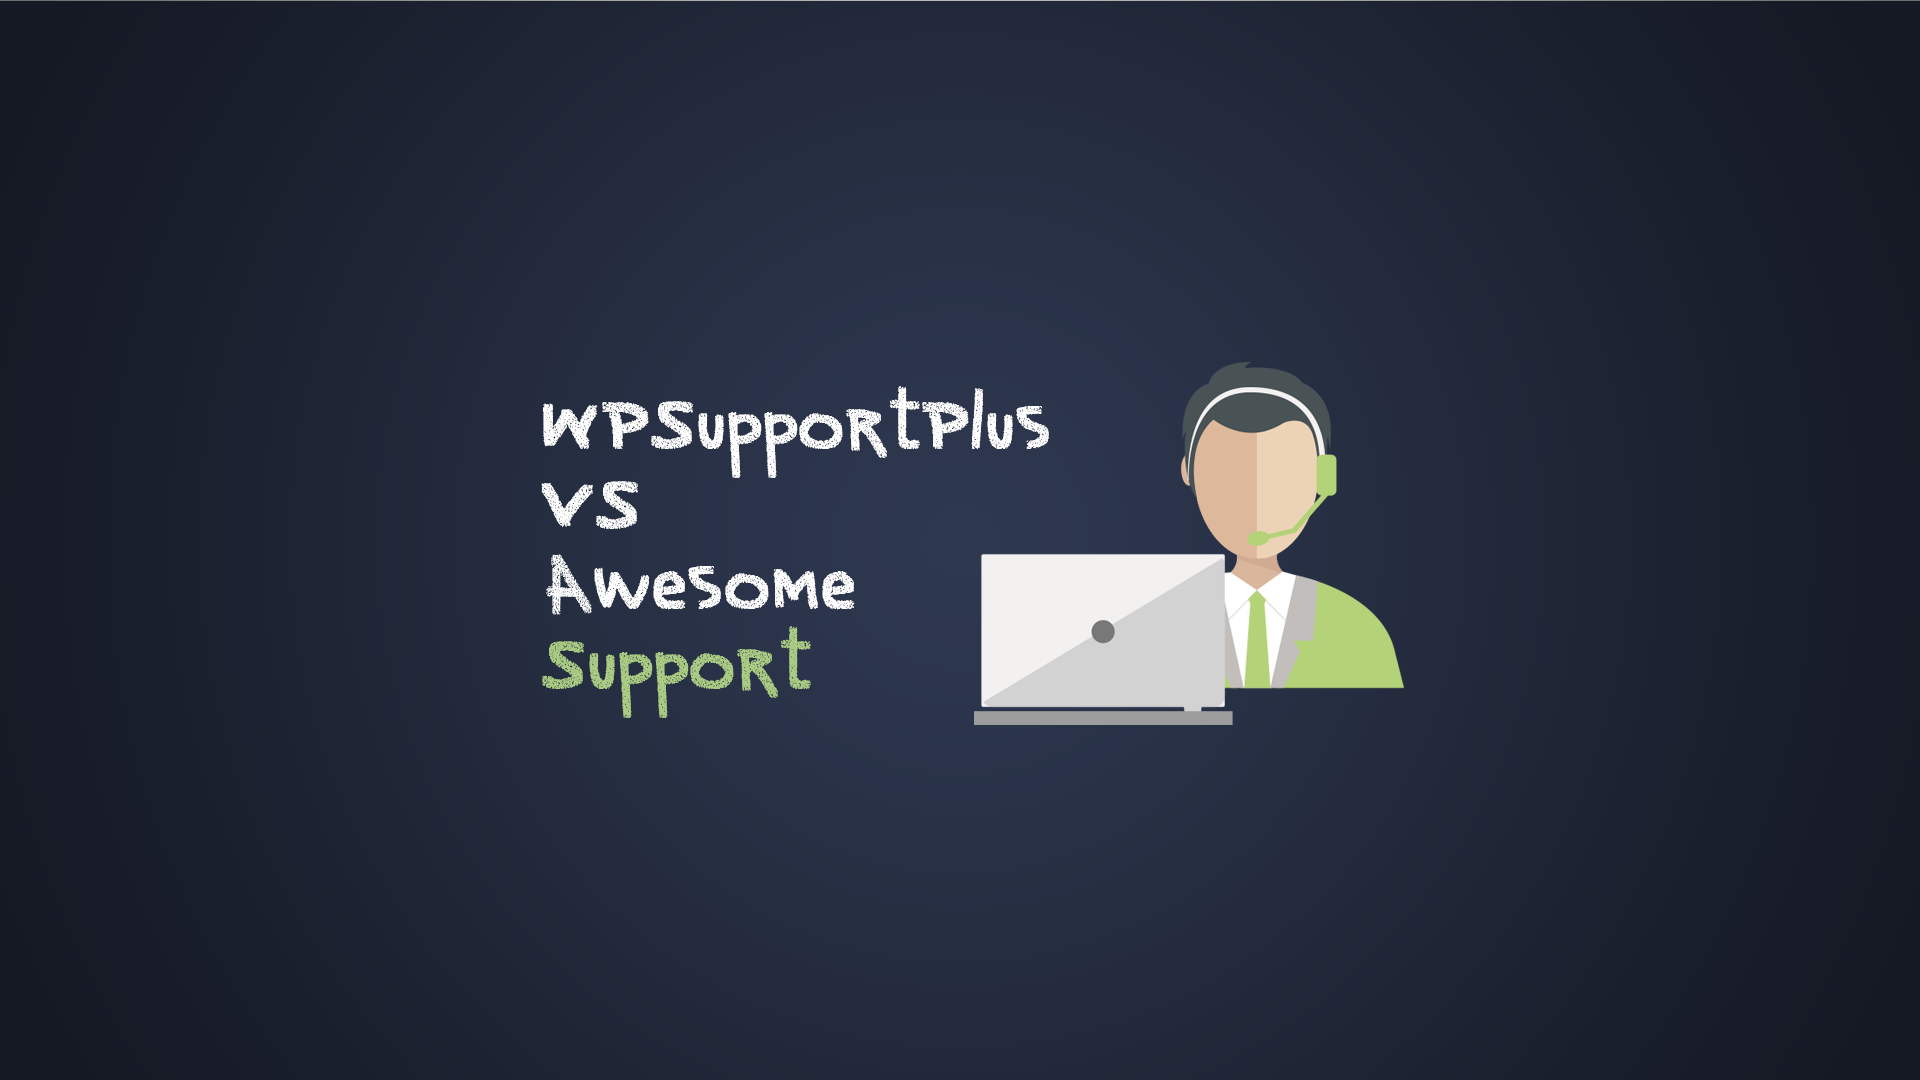 wp support plus documentation